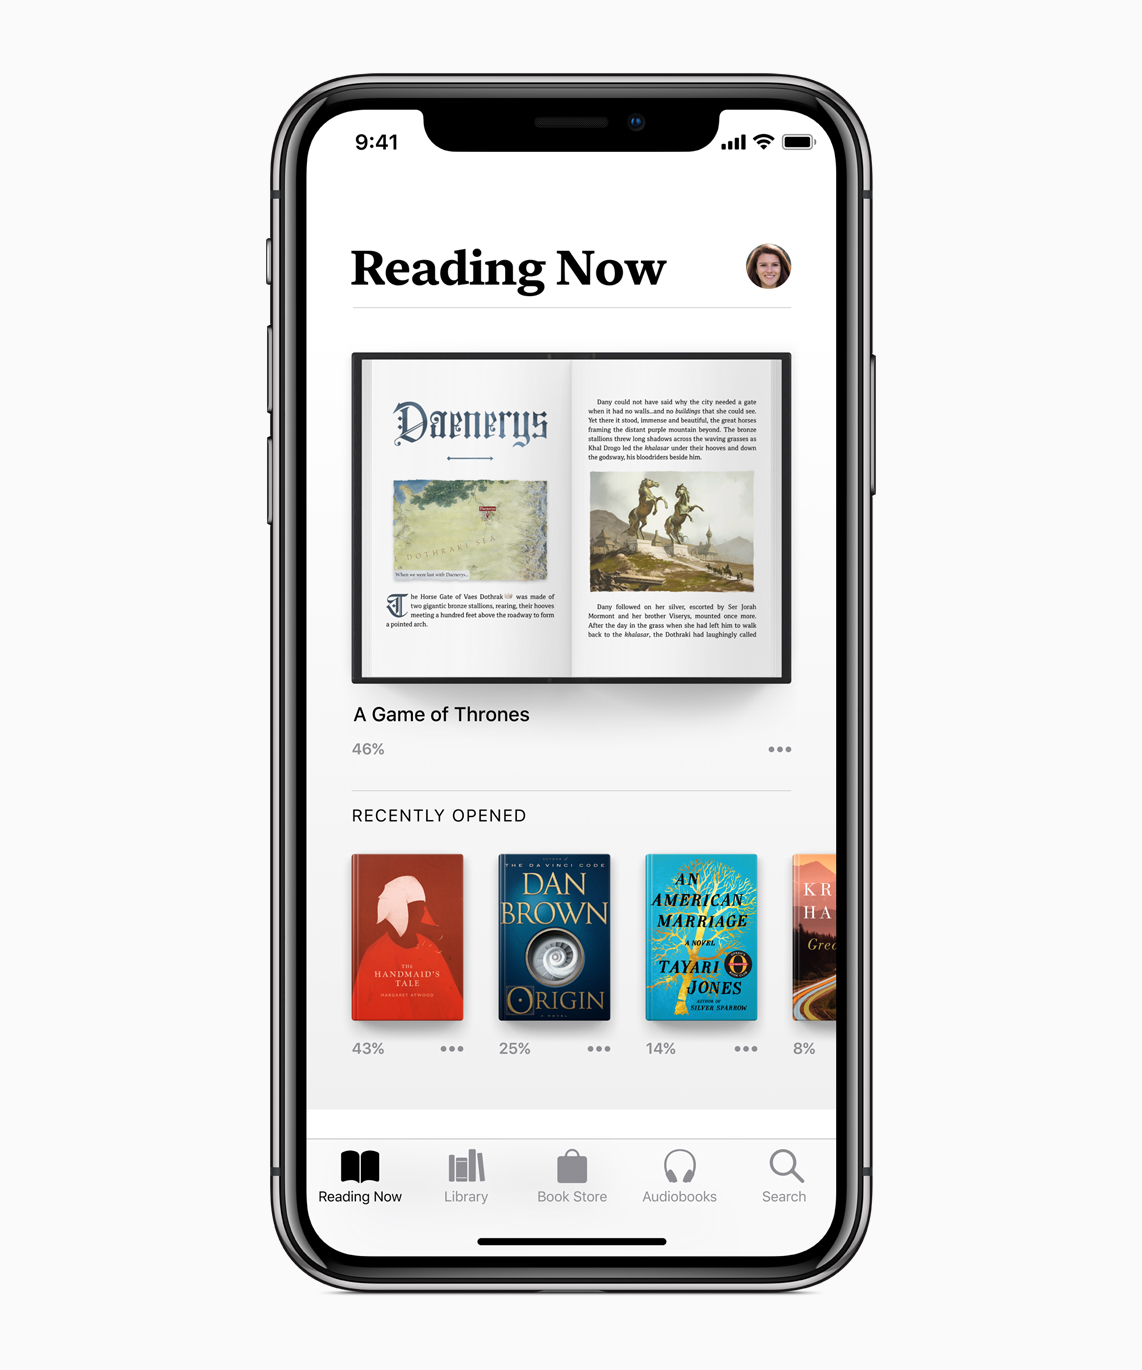 iOS 12 Apple Books Update